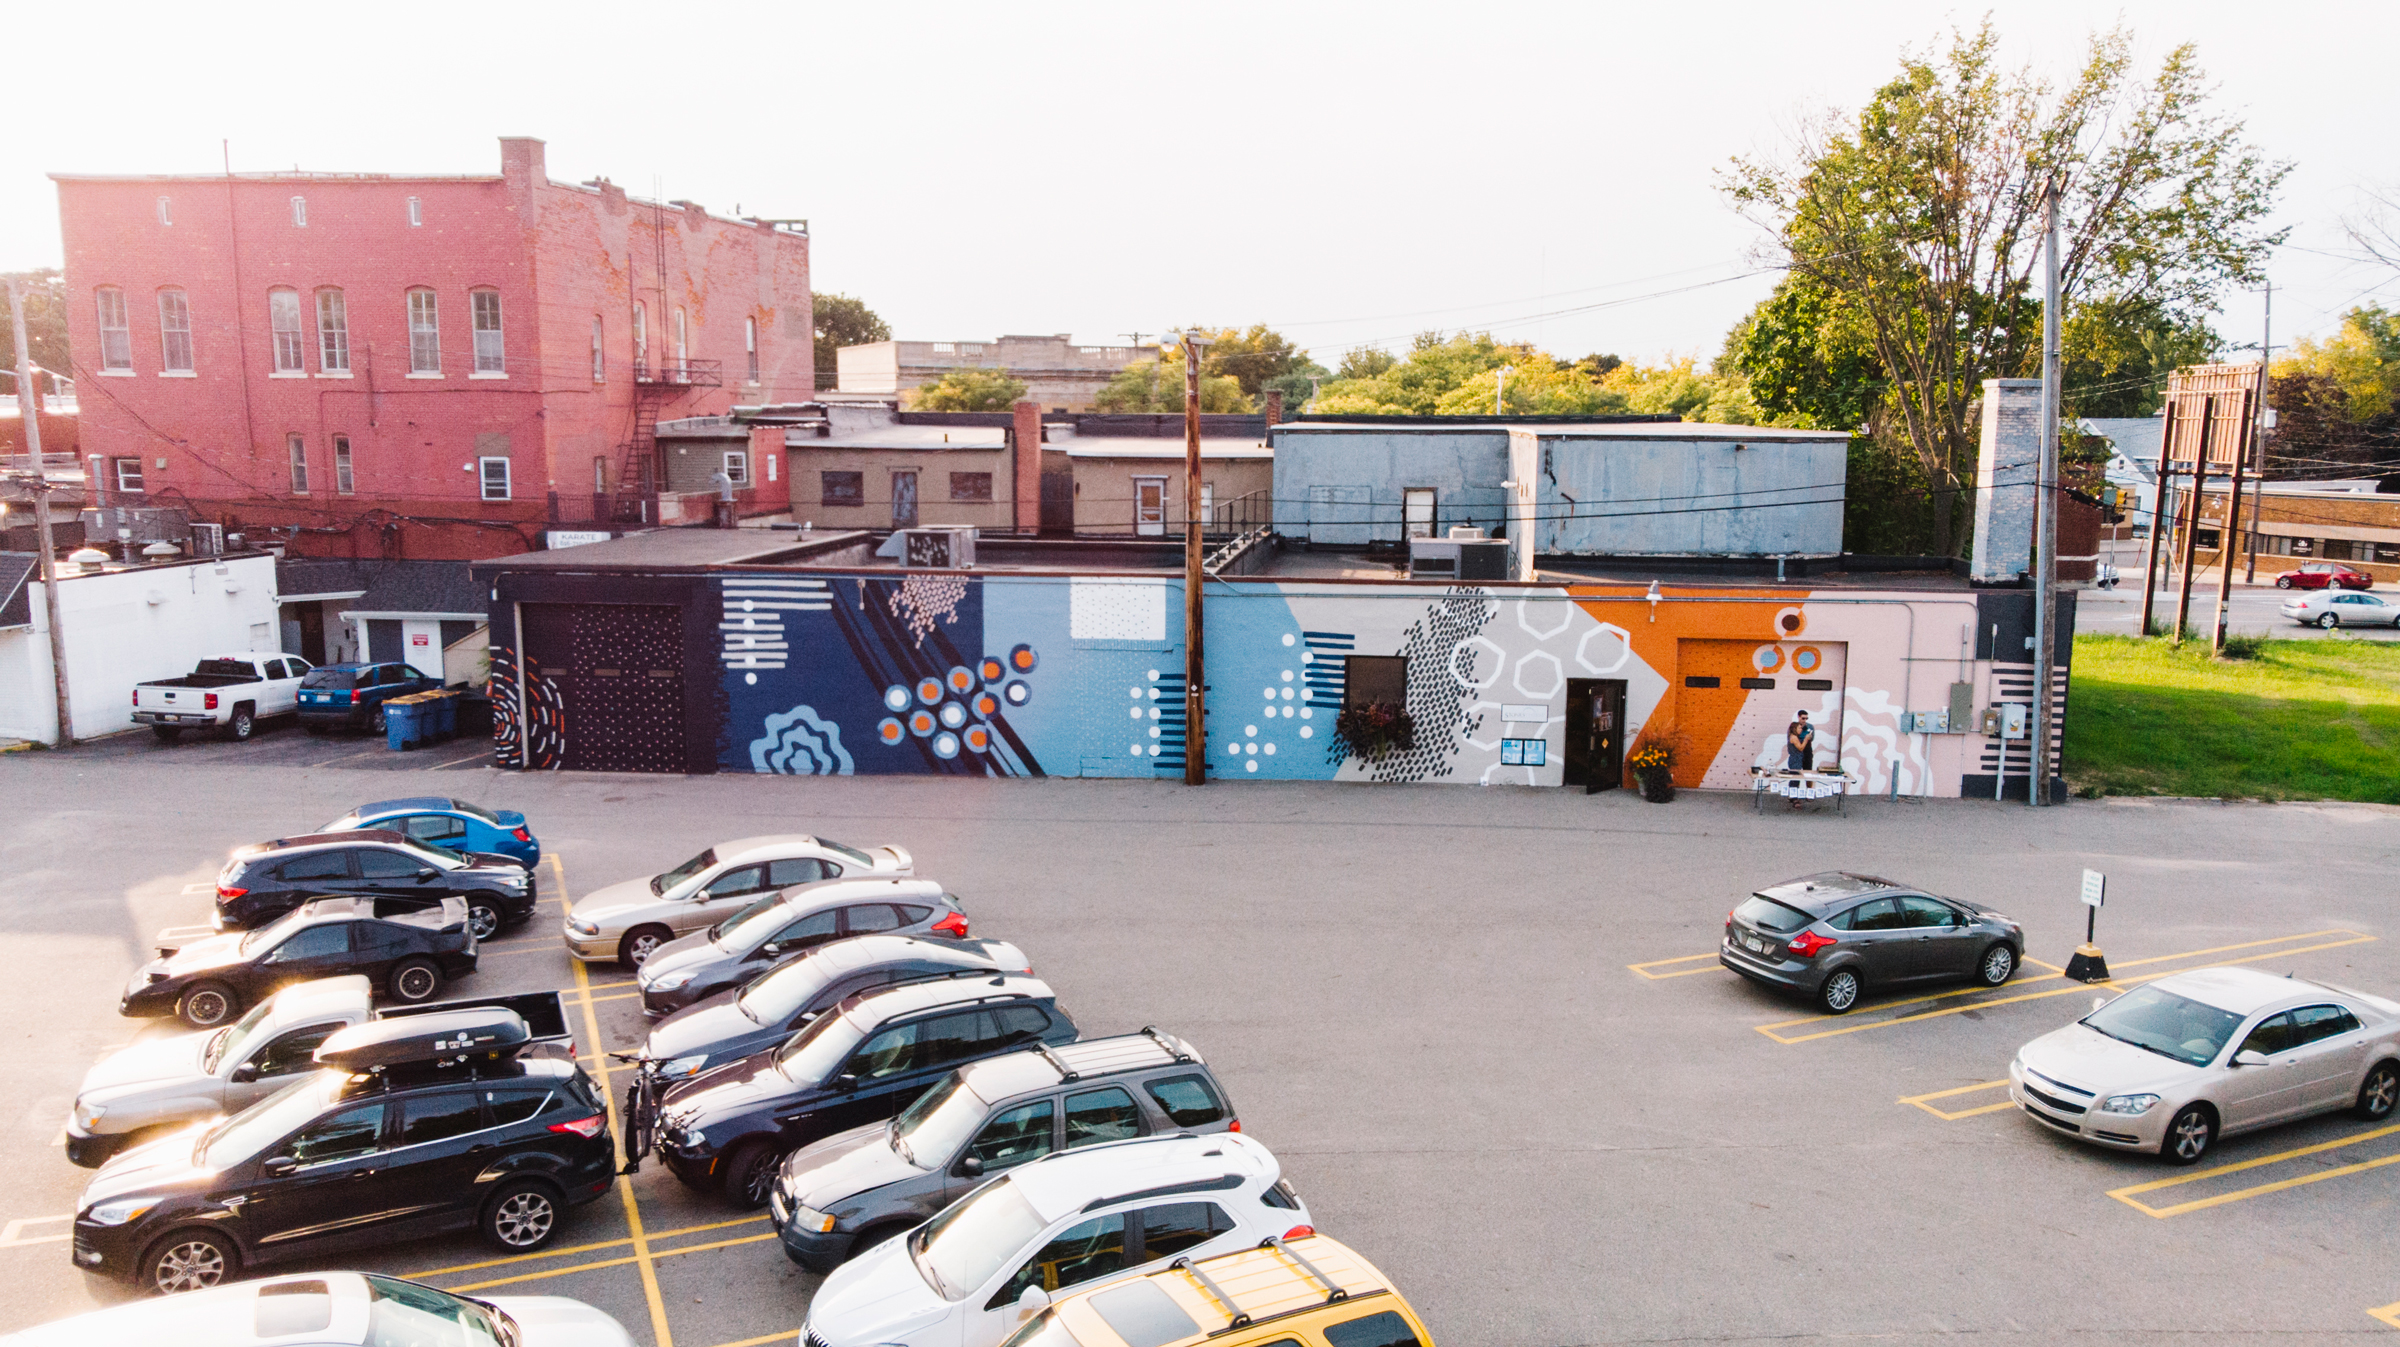 Mural on the backside of Stonesthrow by Evas've. Photo by Carbon Stories